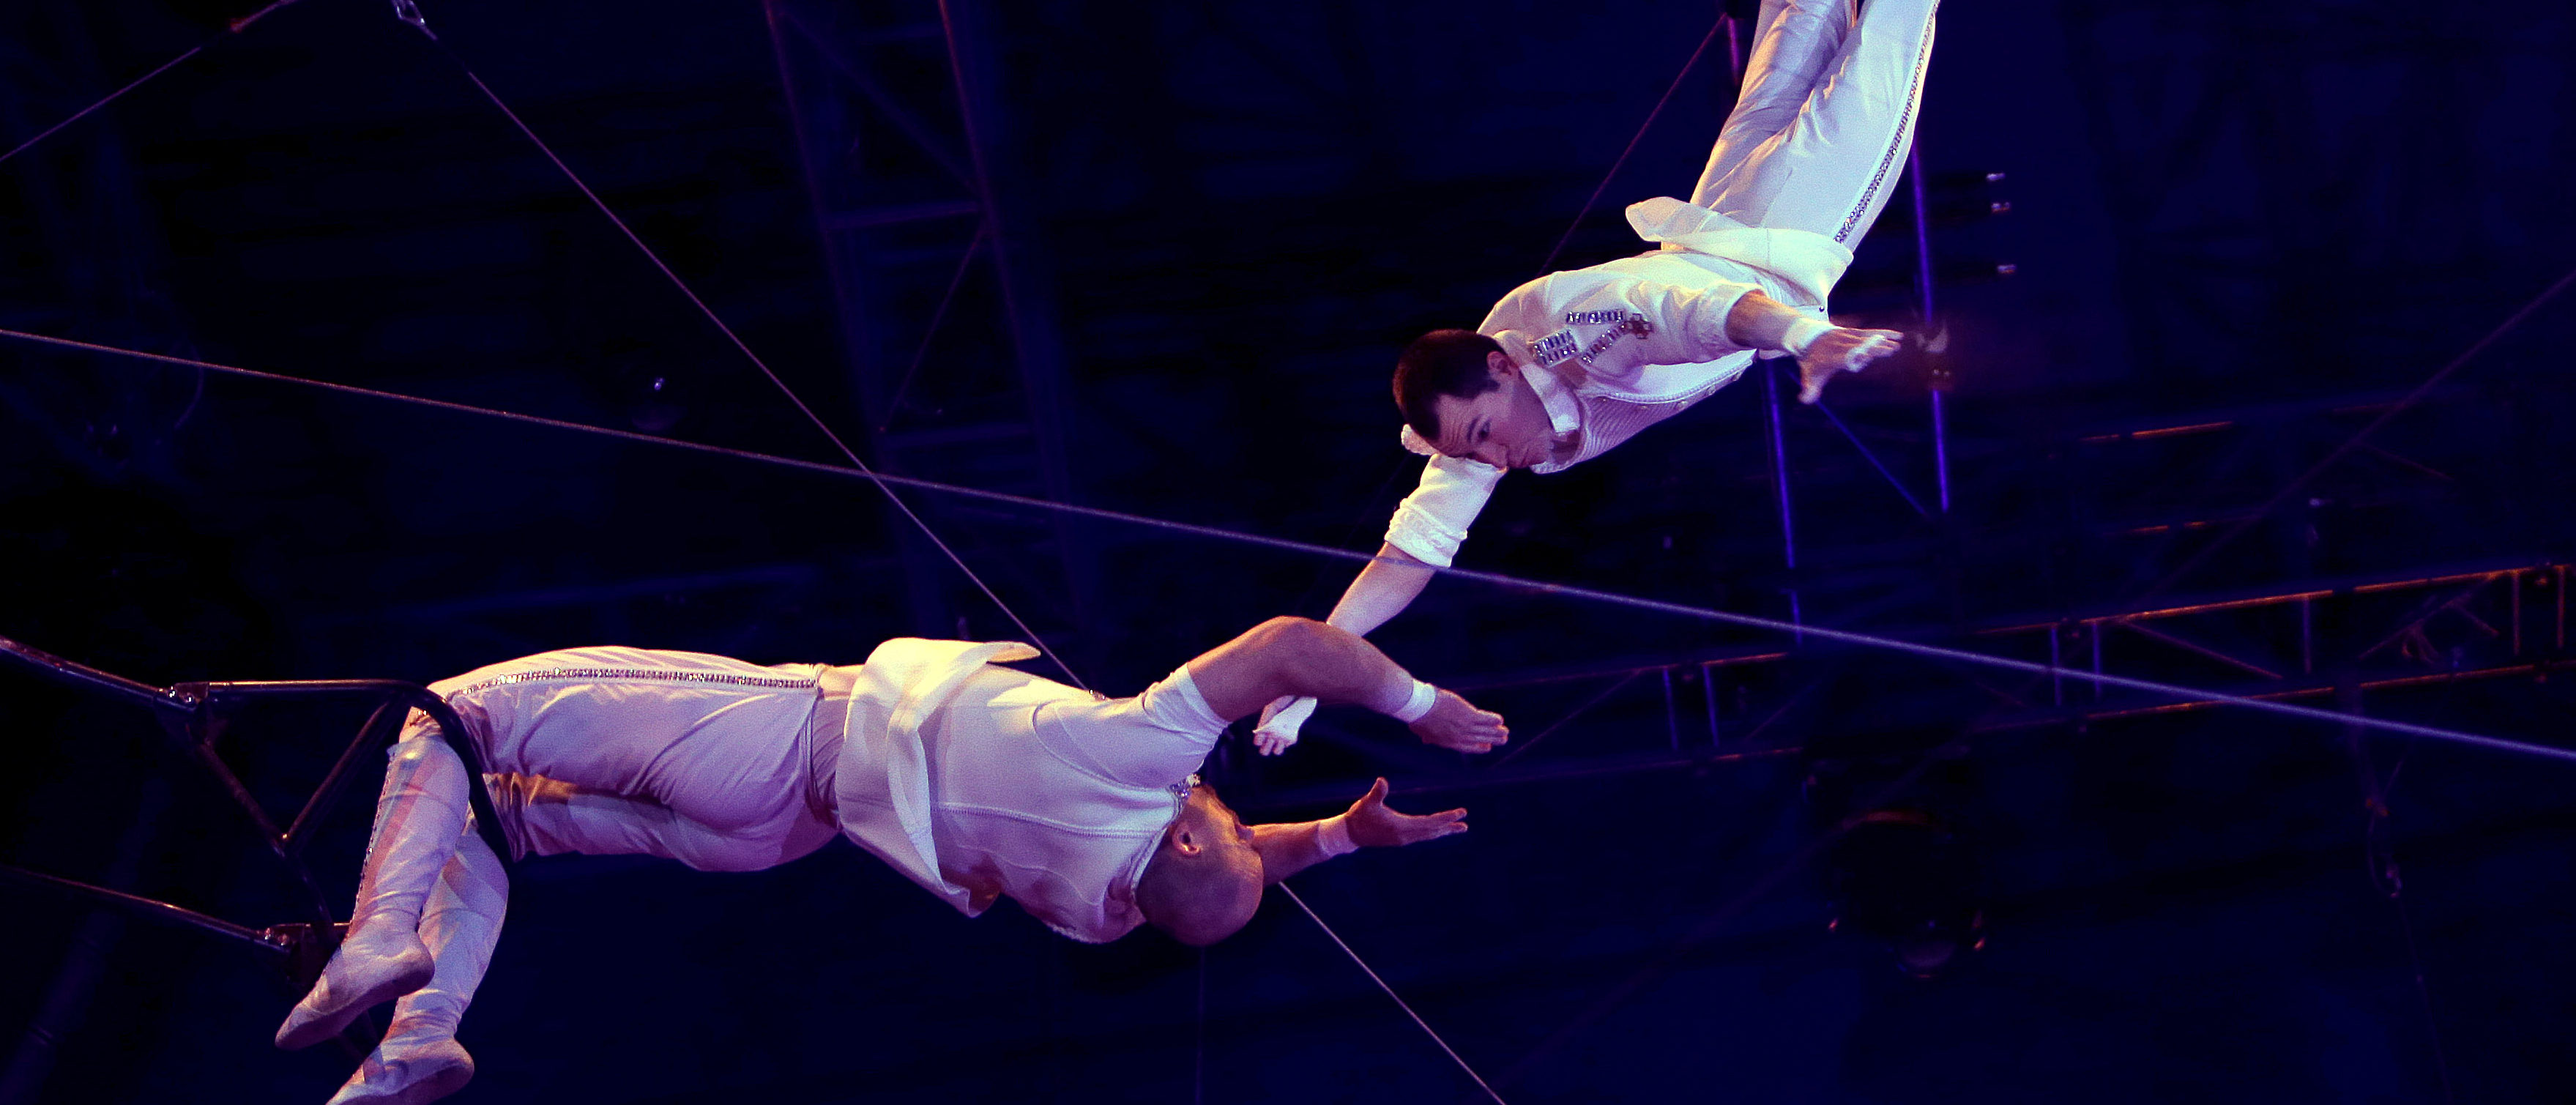 Artists of The Heroes Troupe perform during the Gala evening of the 42th Monte-Carlo International Circus Festival in Monaco, January 23, 2018. Picture taken January 23, 2018. REUTERS/Claude Paris/Pool